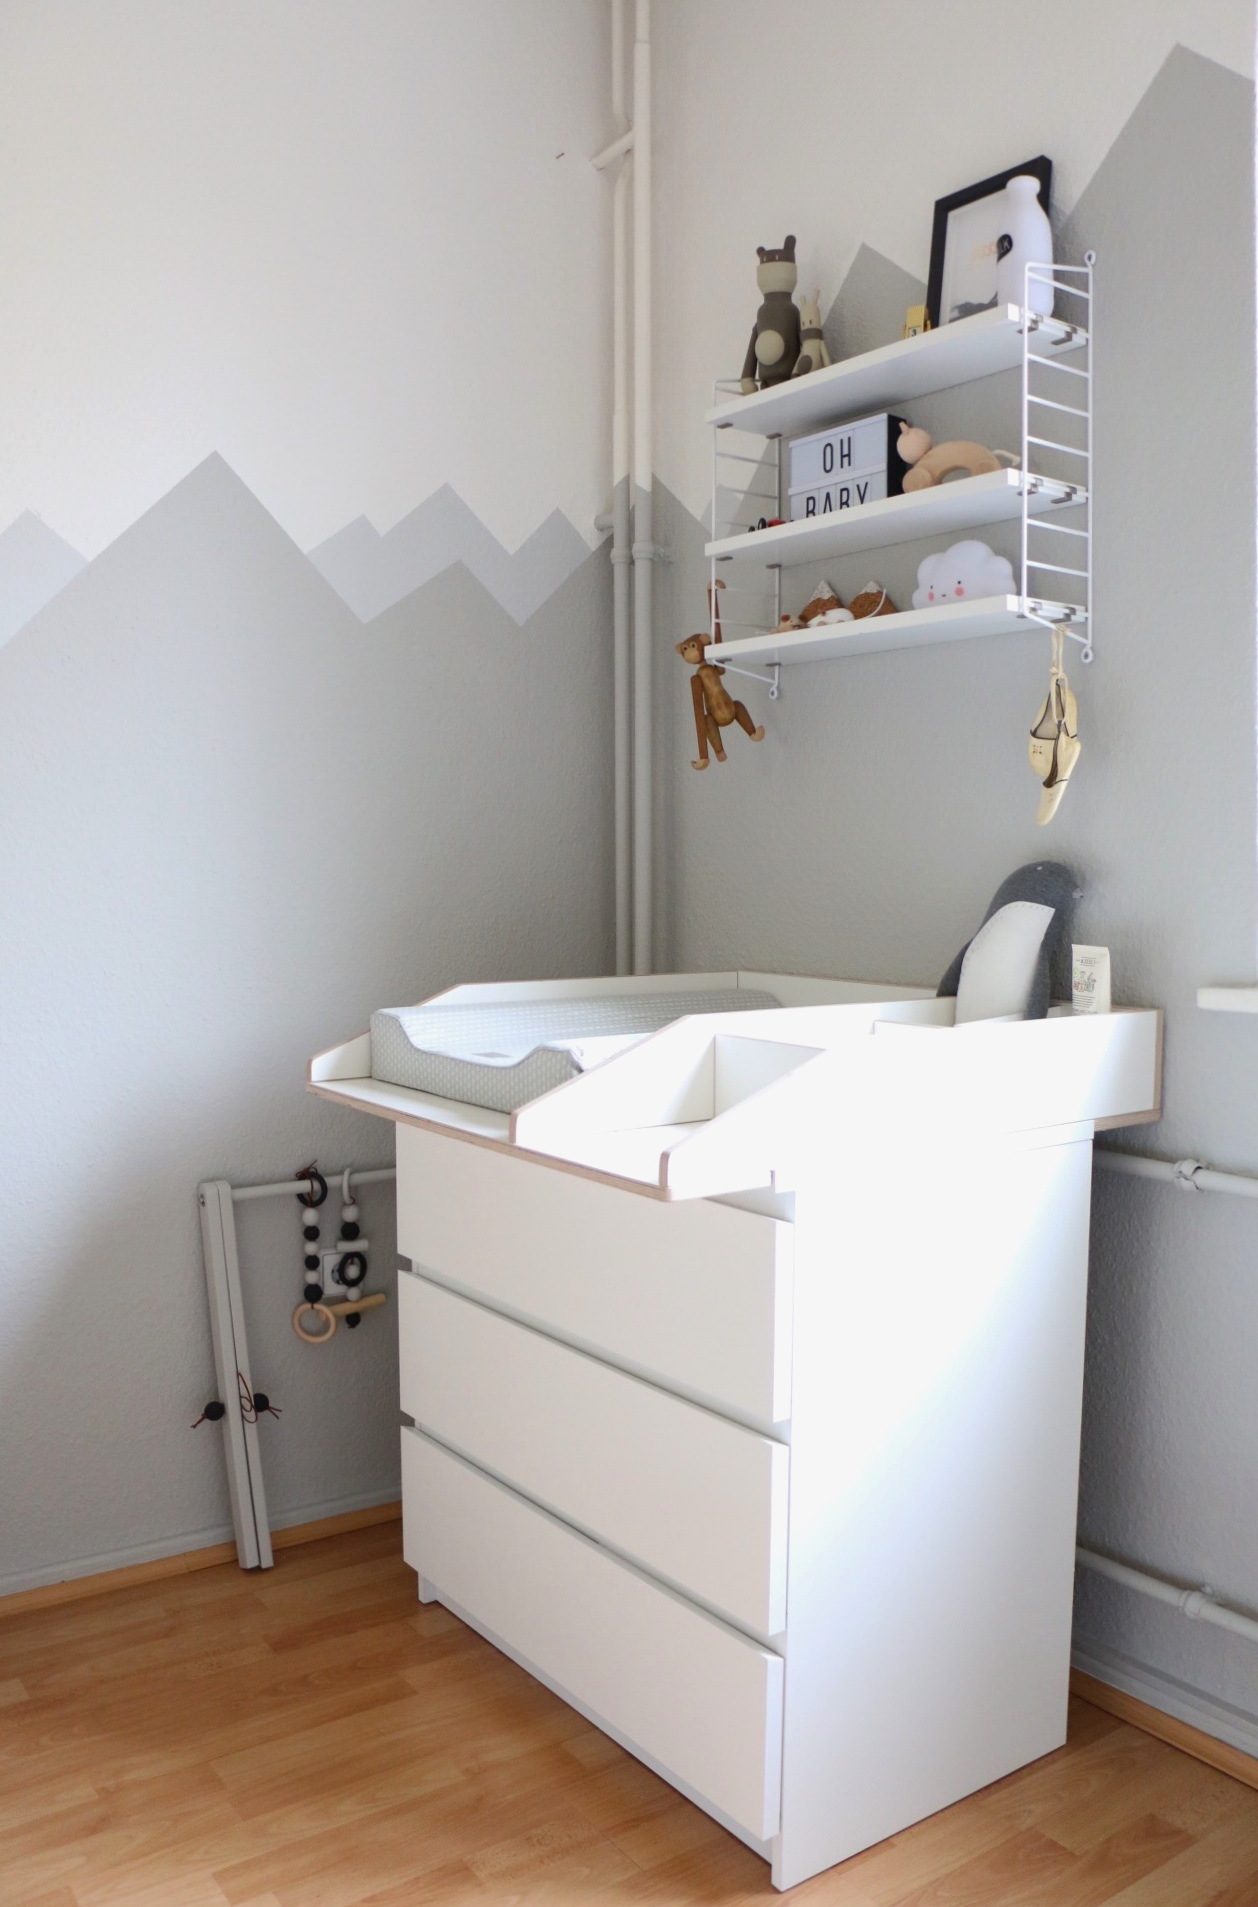 mountain nursery wallpaint wandgestaltung im babyzimmer. Black Bedroom Furniture Sets. Home Design Ideas